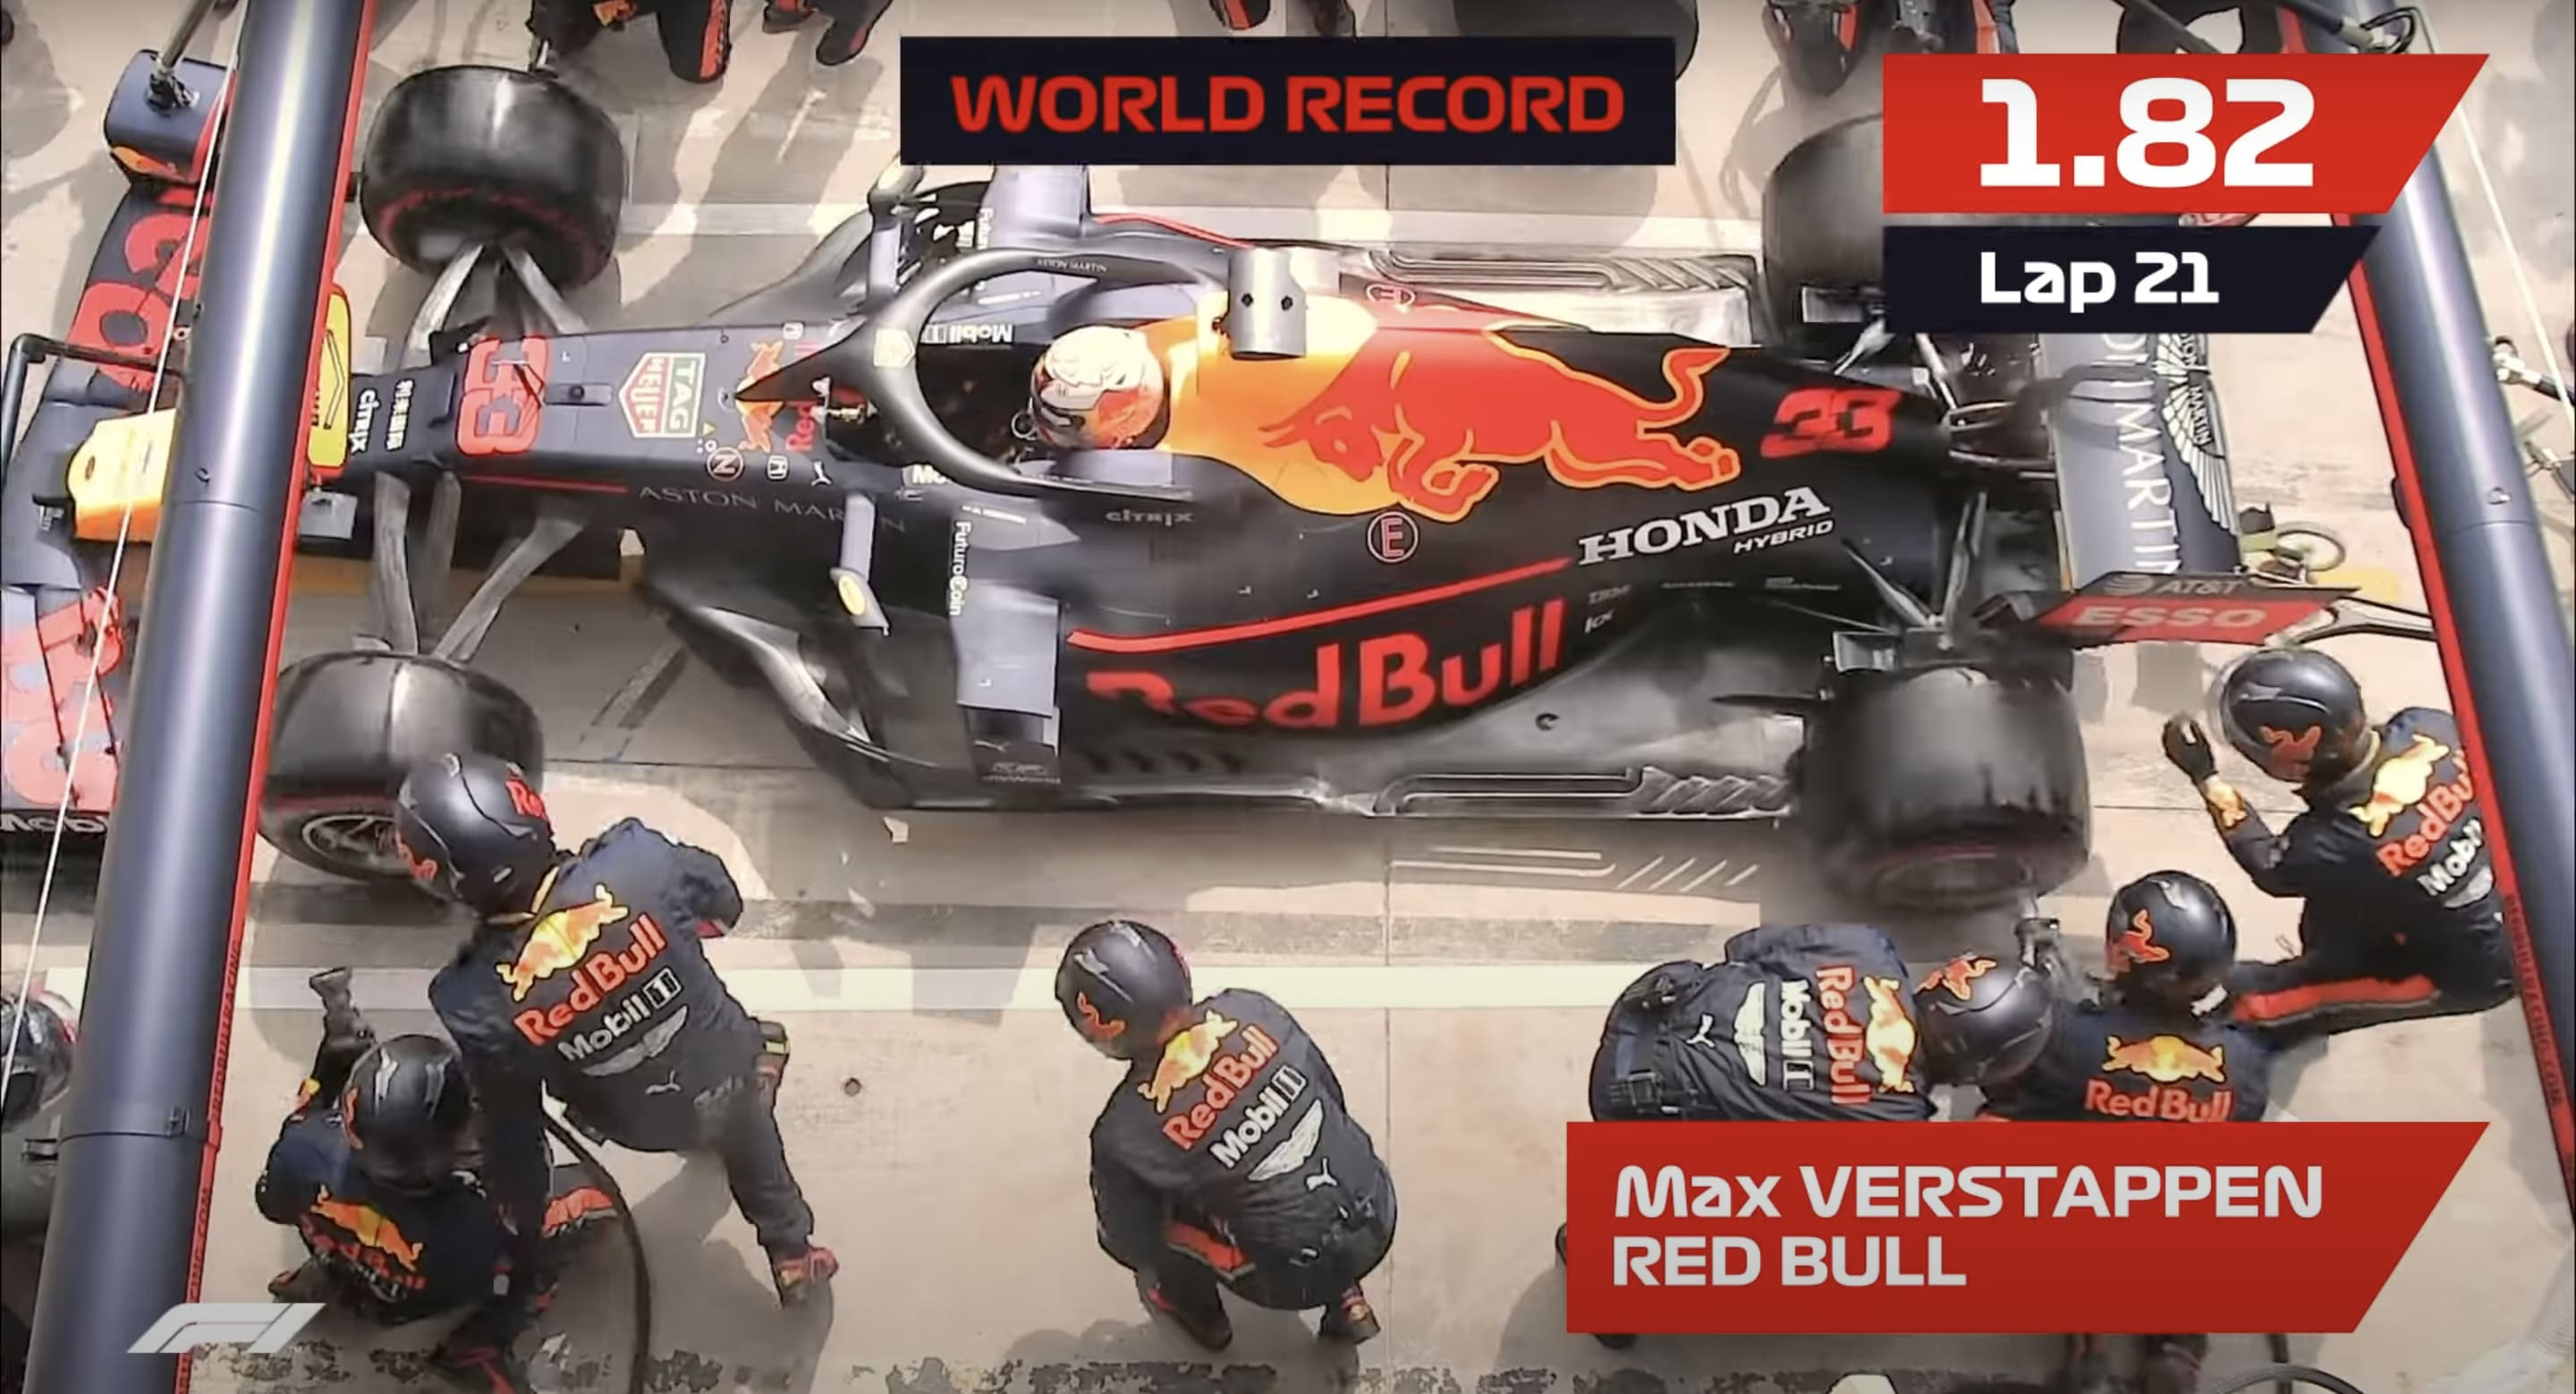 World Record Pit-Stop of RedBull